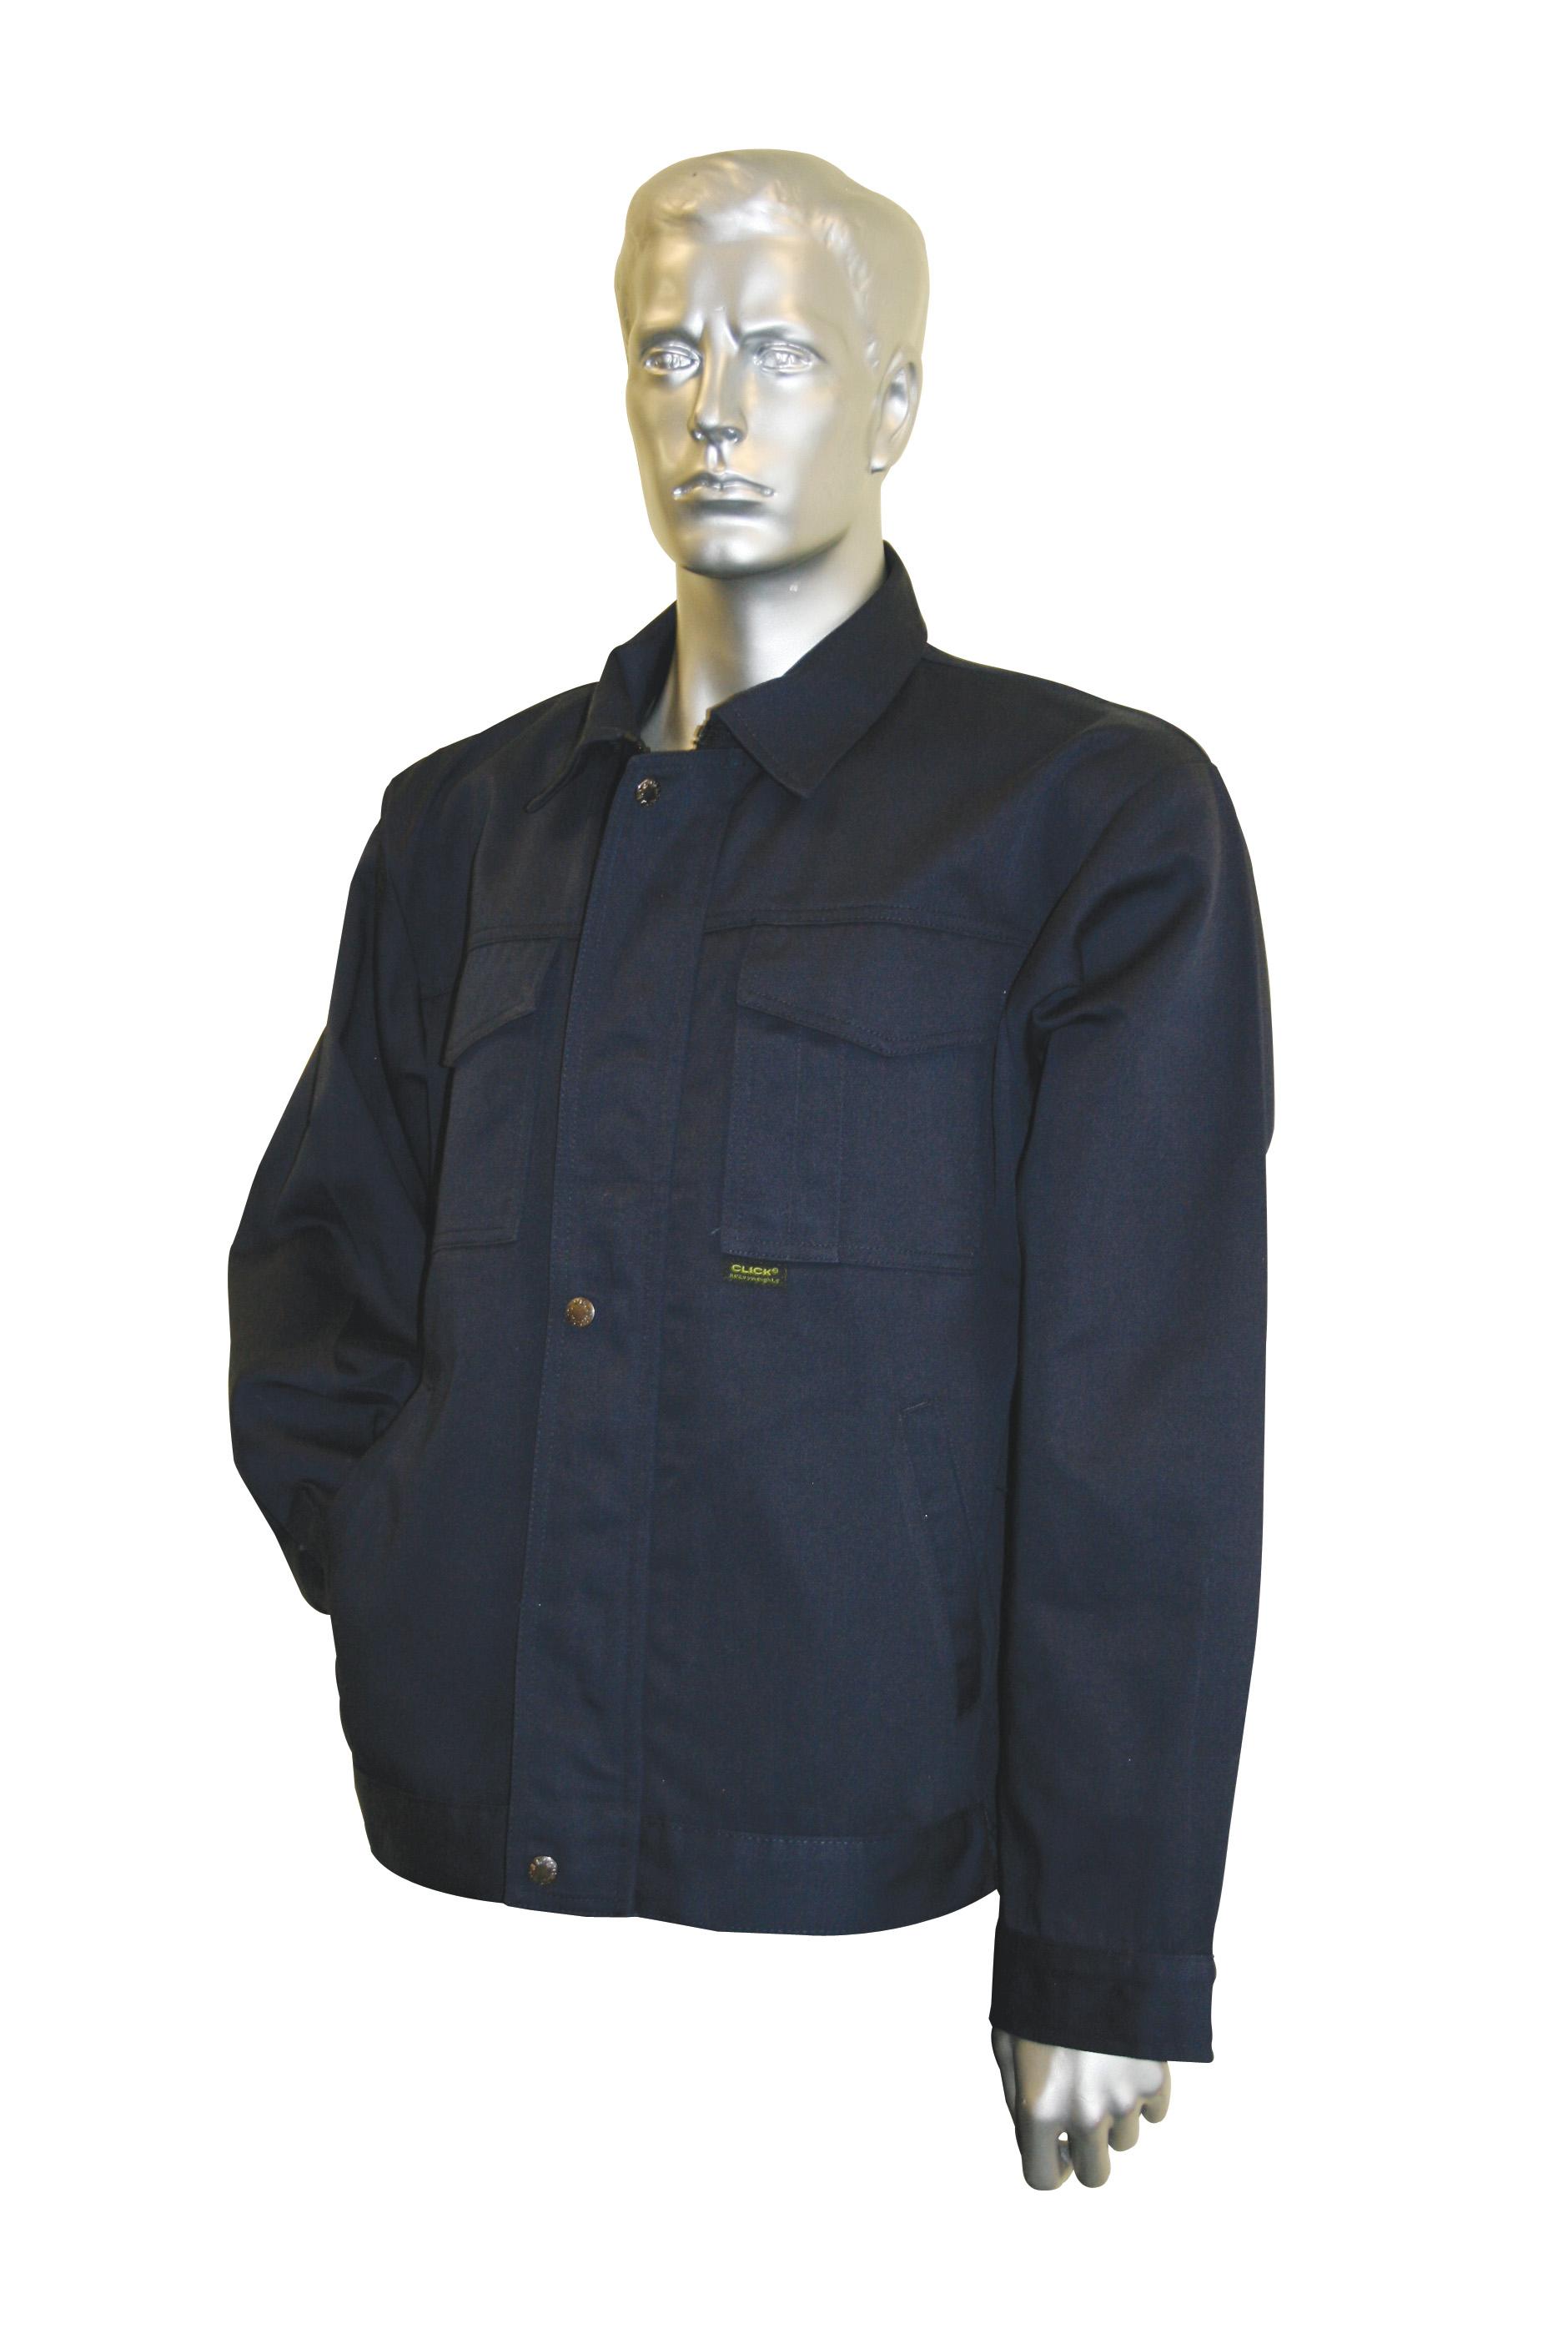 Driver Clothing